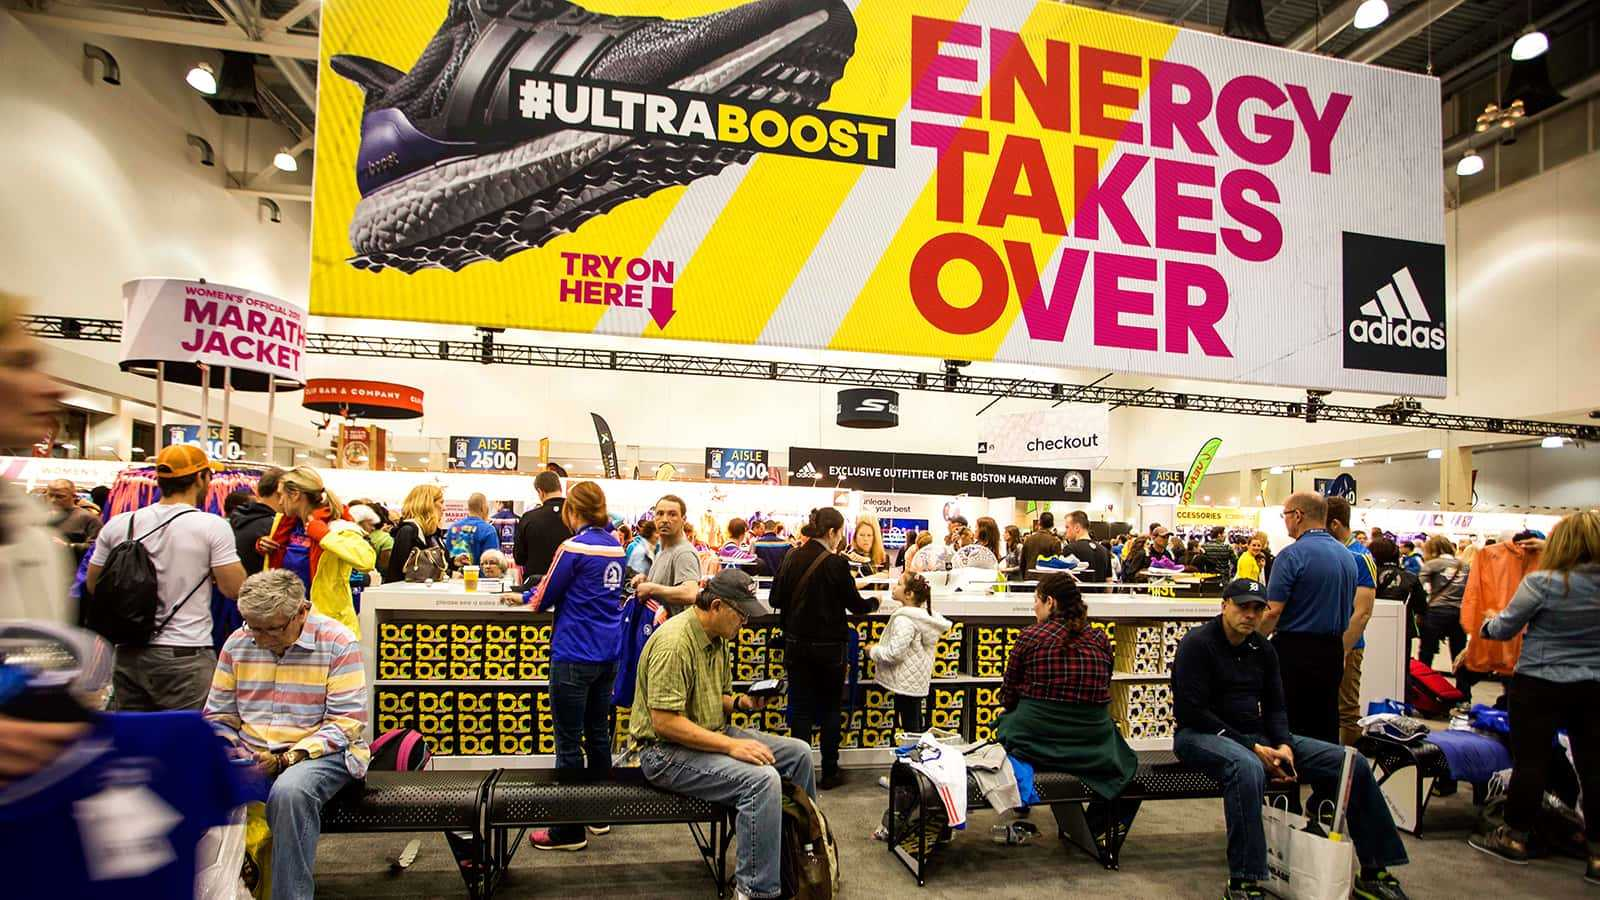 'Energy Takes Over' shoe fitting center at the adidas Boston Marathon store 2015.